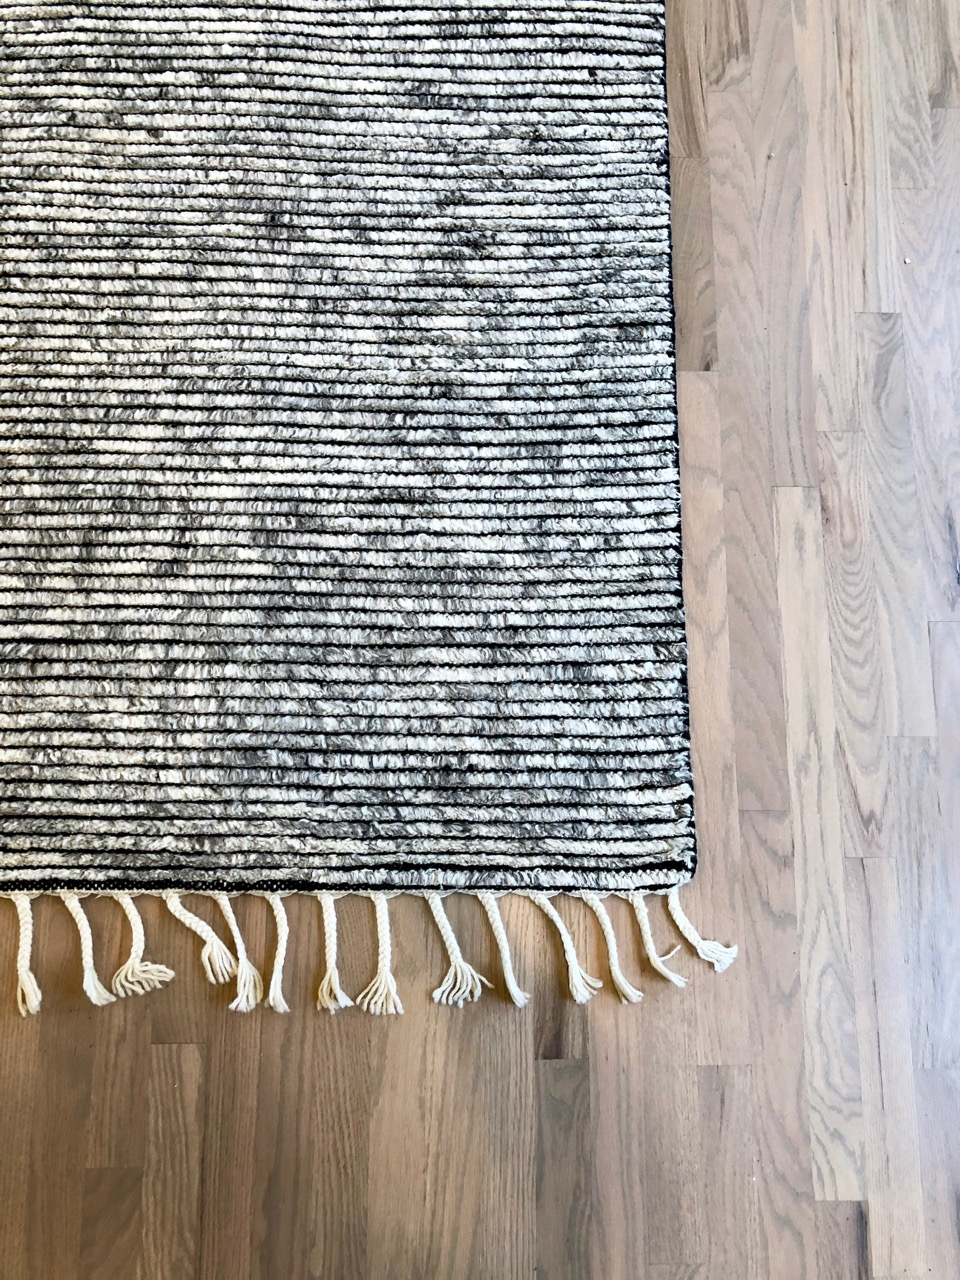 A moroccan style rug adds beautiful texture to my client's newly refinished wood floors.  This is just a sneak peek -- wait until you see the sectional that is coming!